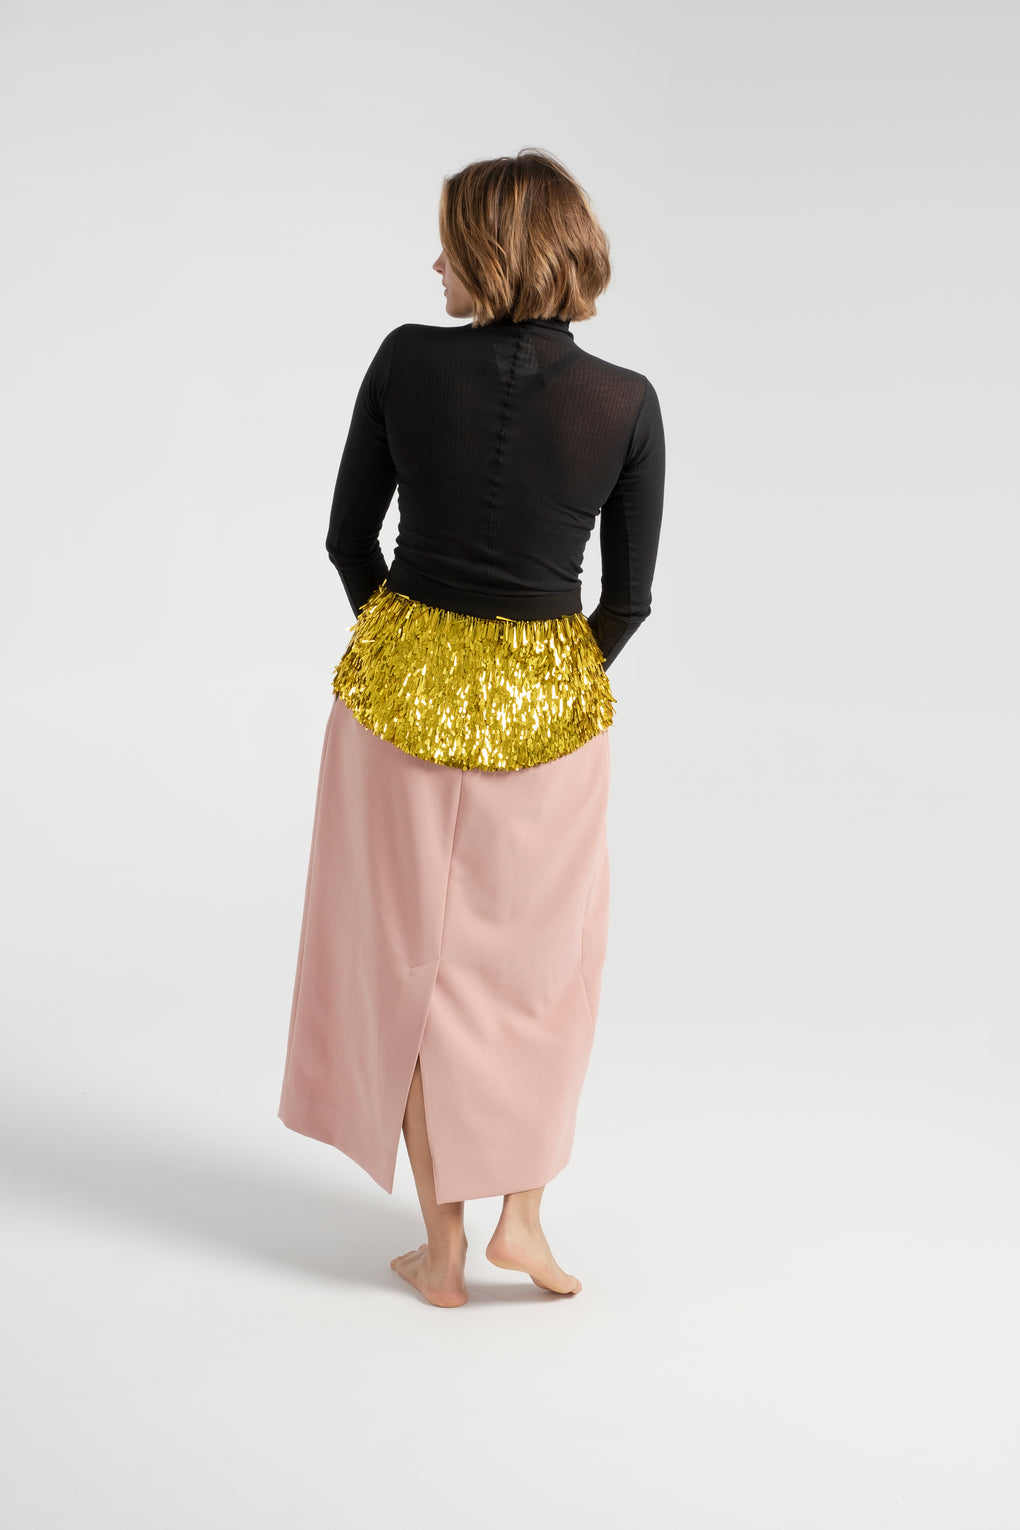 Rachel Comey-Rachel Comey Tuscala Skirt-pink sequined skirt-midi pink skirt-sequined skirt-Idun-St. Paul